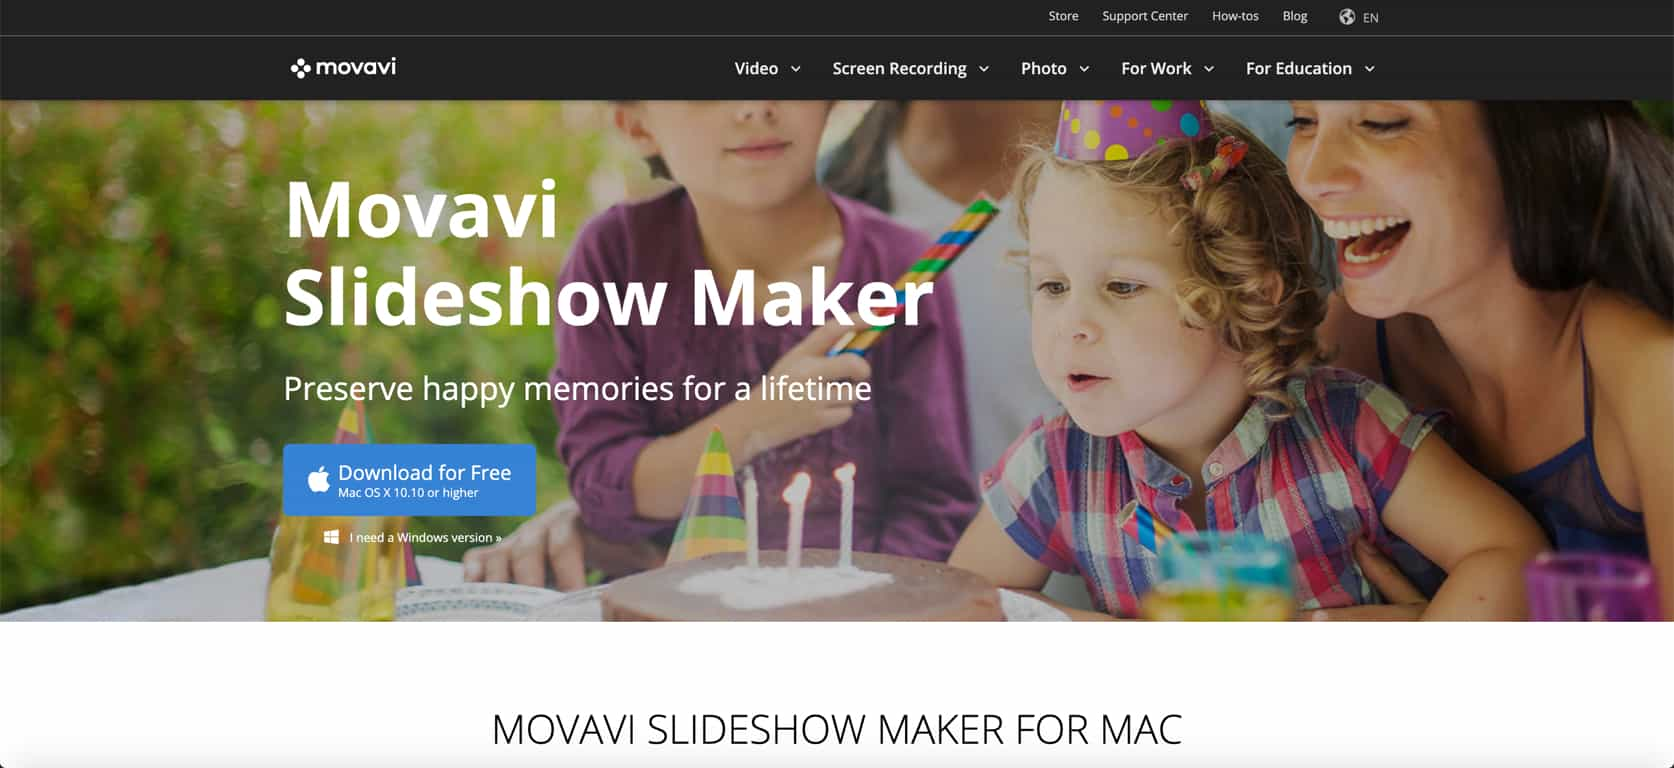 Movavi Magic, Part 21 The Slideshow Maker You've Been Waiting For...